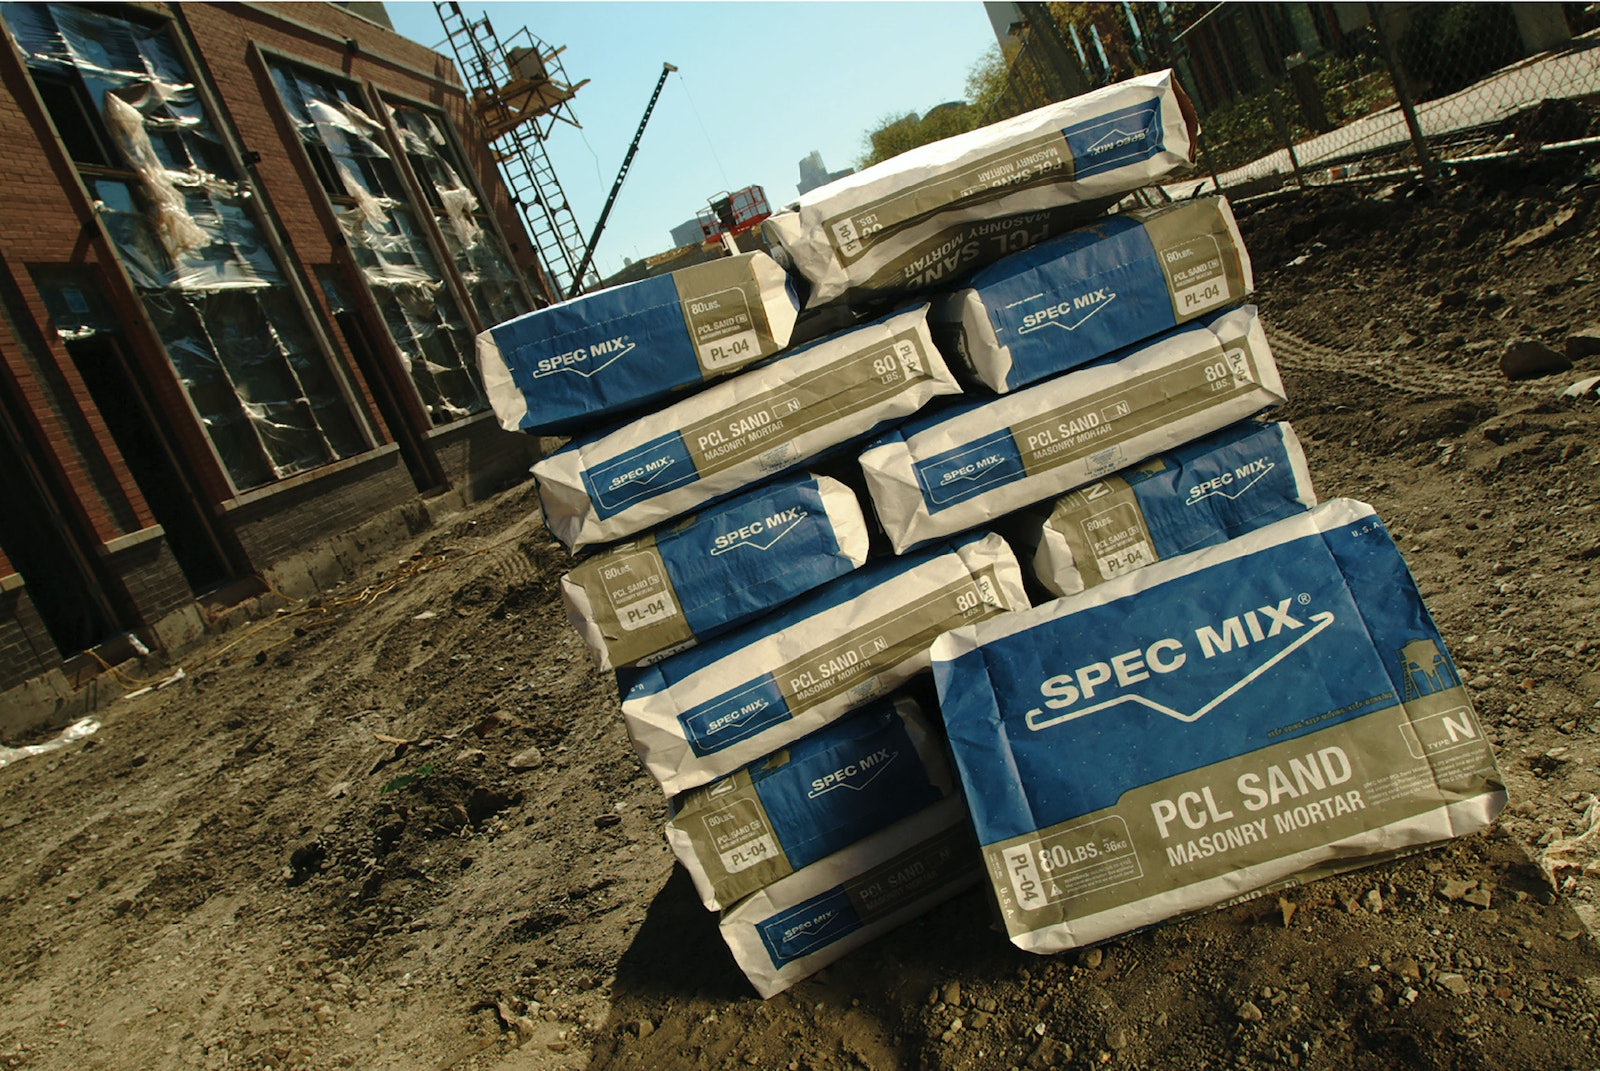 Specmix bags pcl Bags